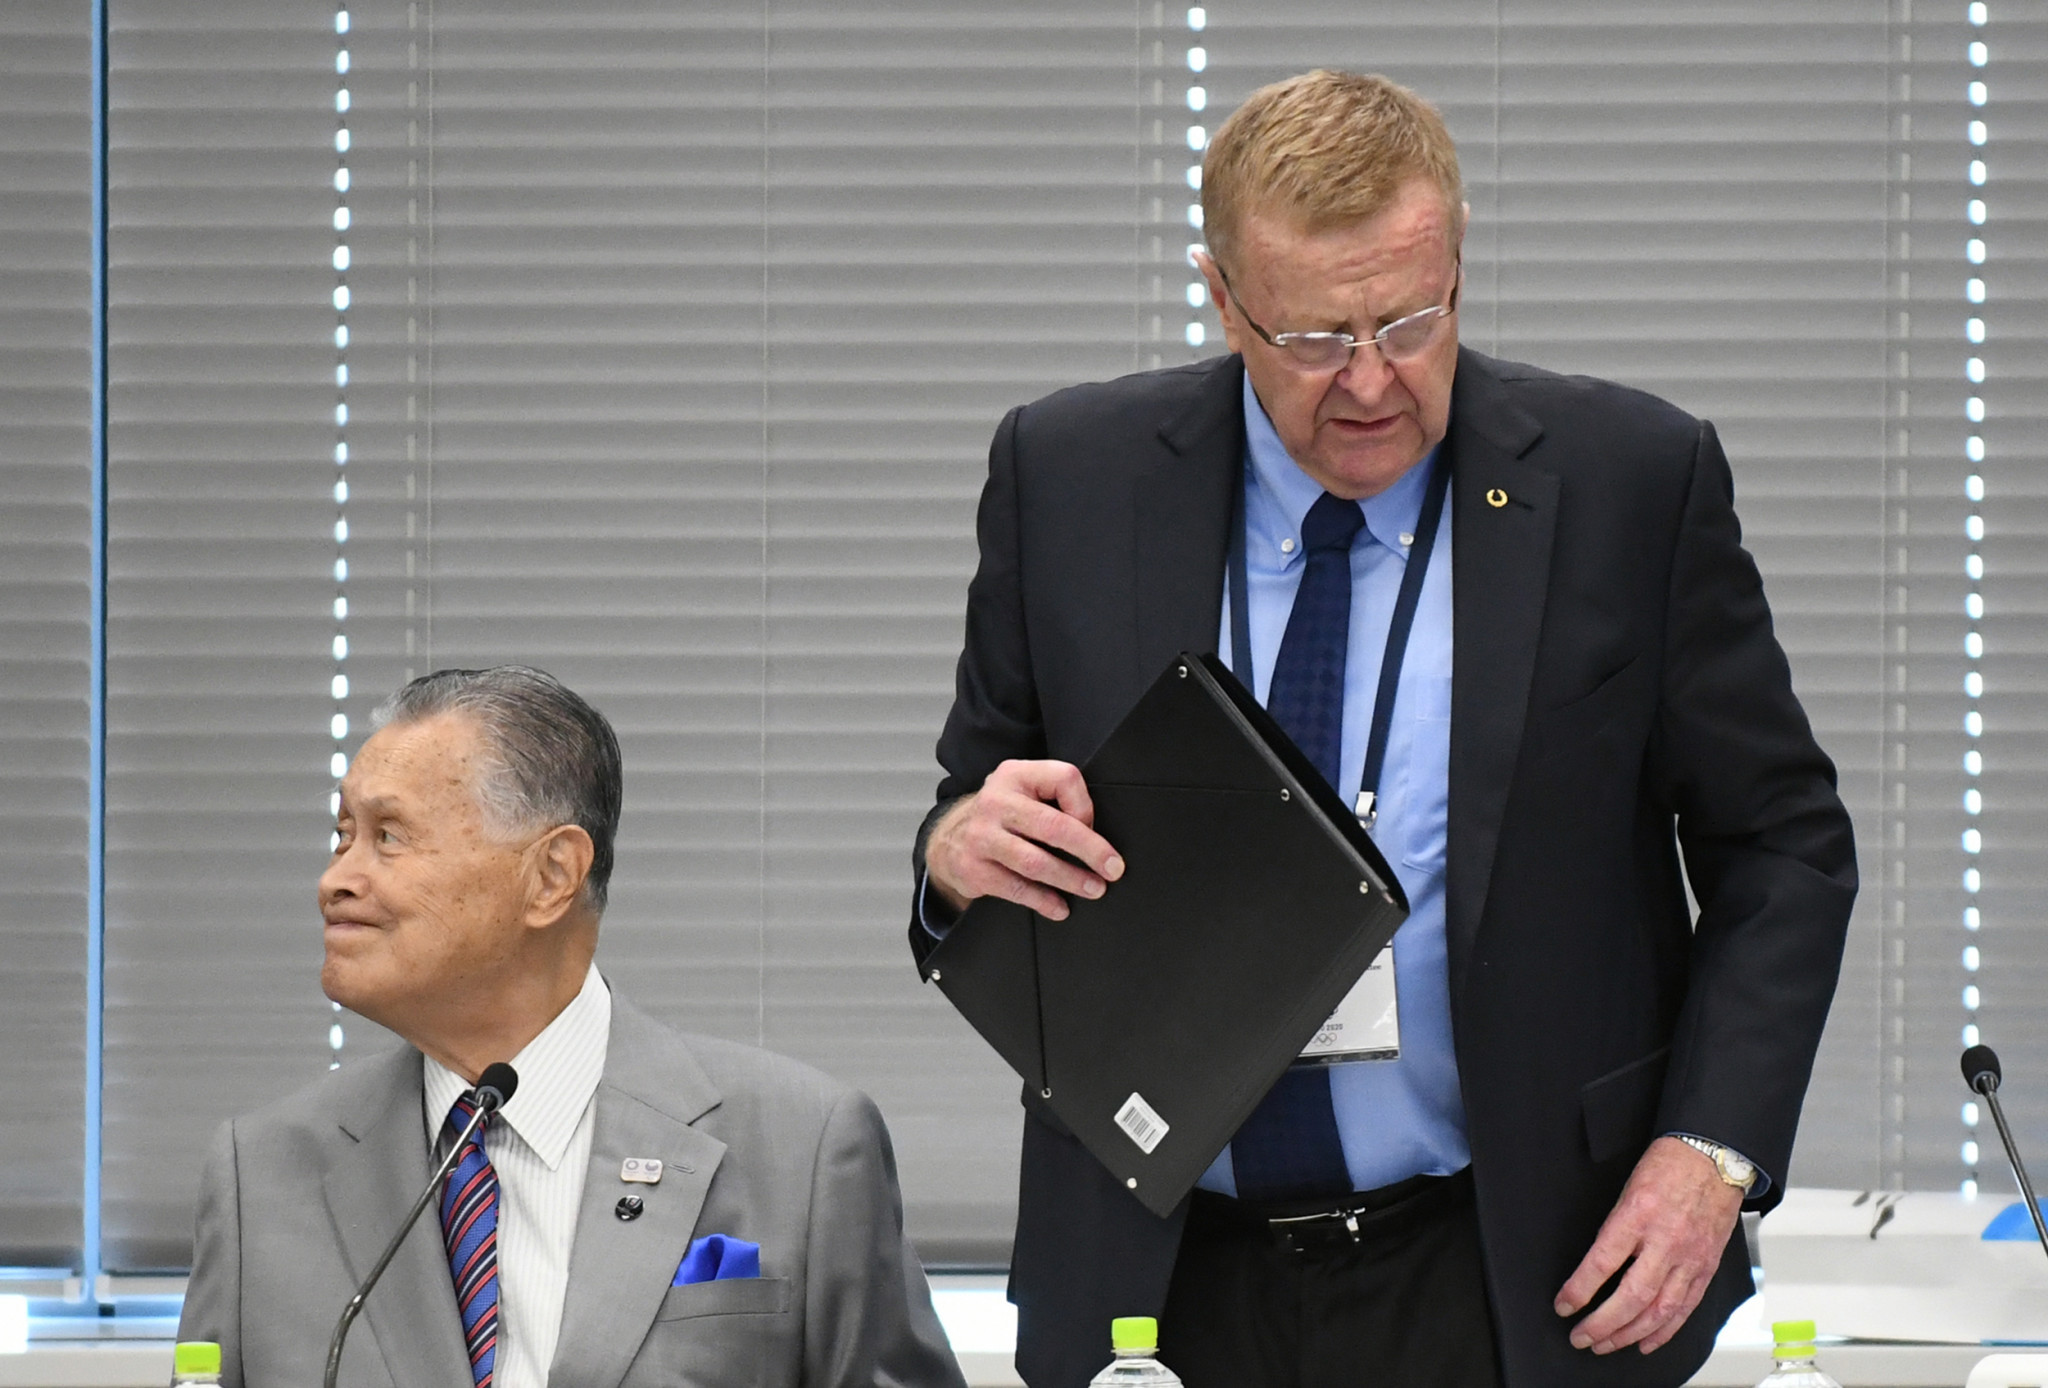 John Coates, right, is chair of the IOC Legal Affairs Commission ©Getty Images